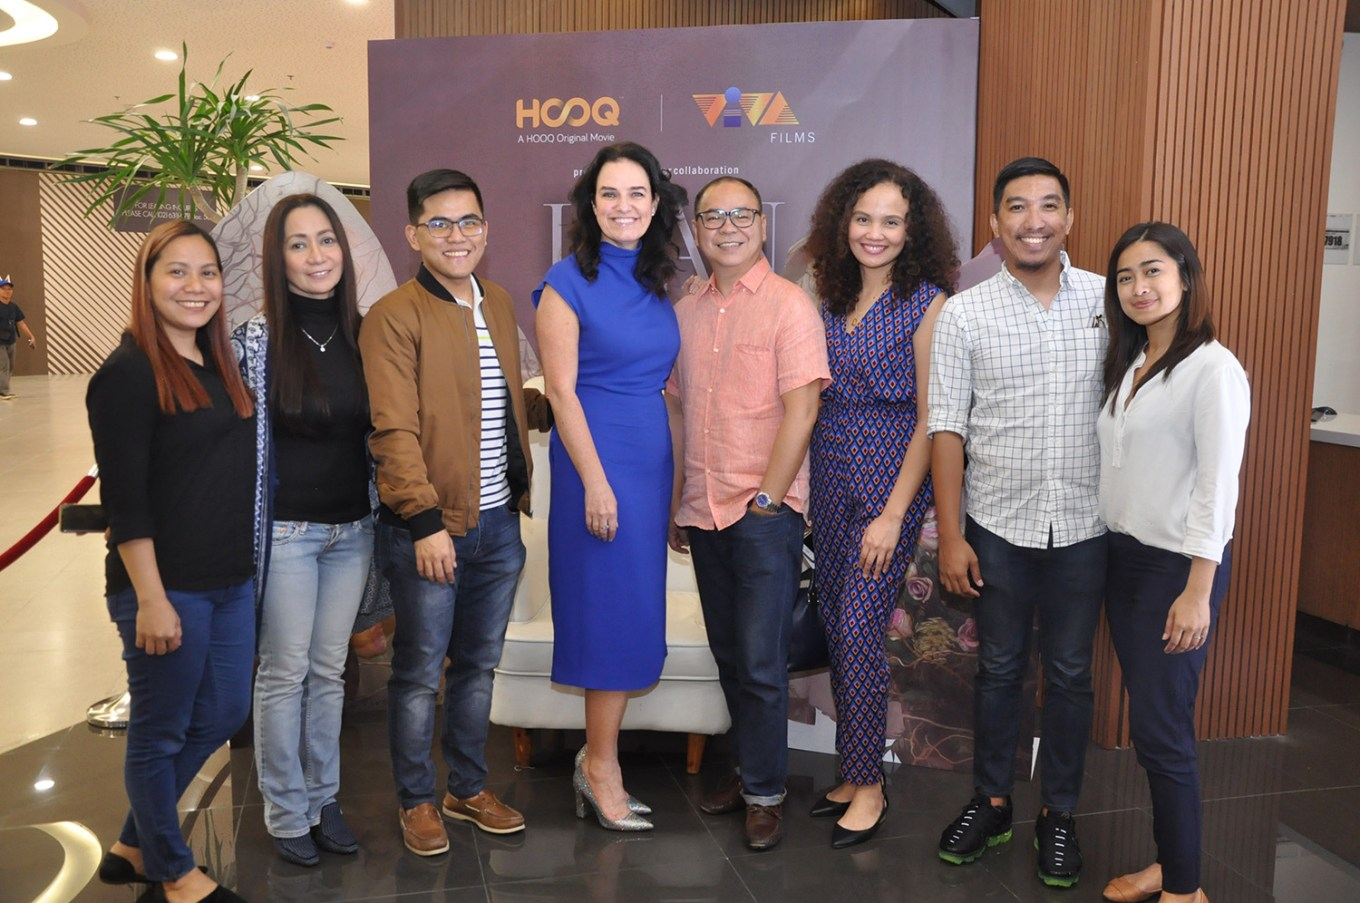 HOOQ launches first ever Original Movie ULAN